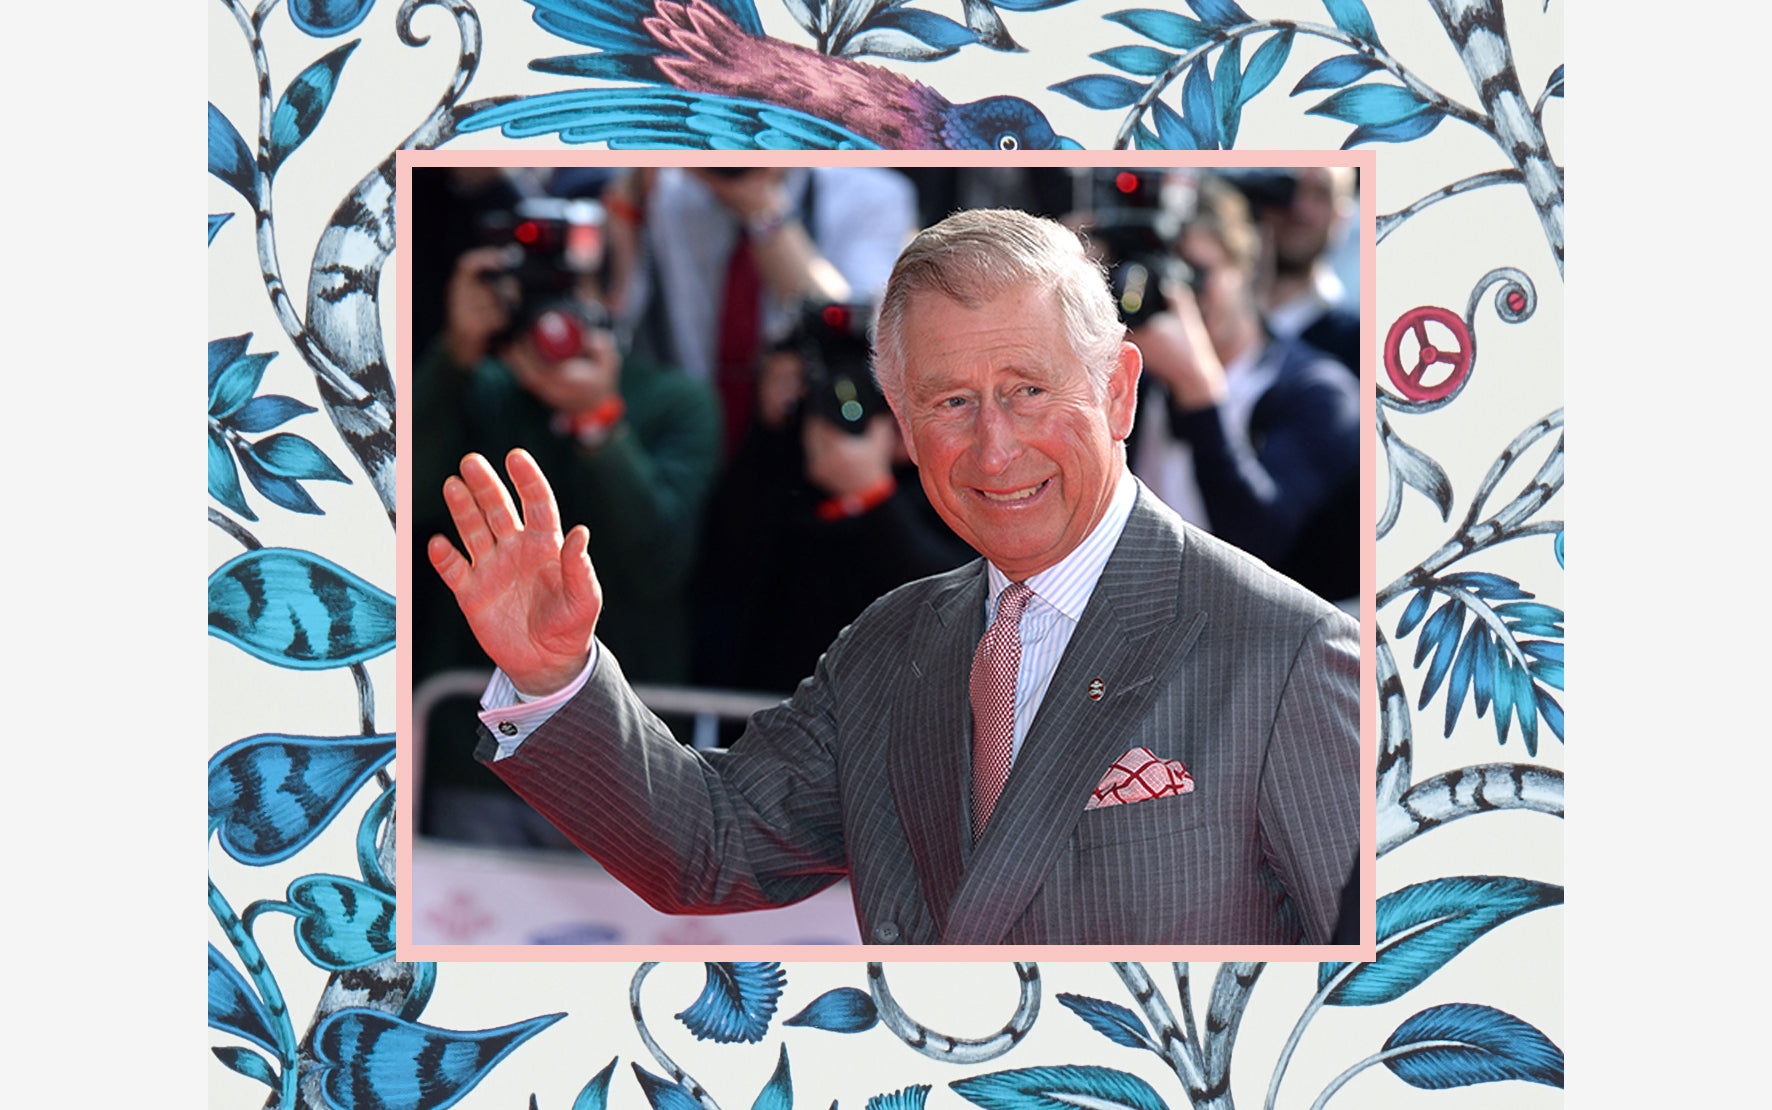 Prince Charles loves to mix and match his prints and colours - Emma J Shipley silk pocket squares are the perfect way to introduce Charles' charming style to any suit jacket